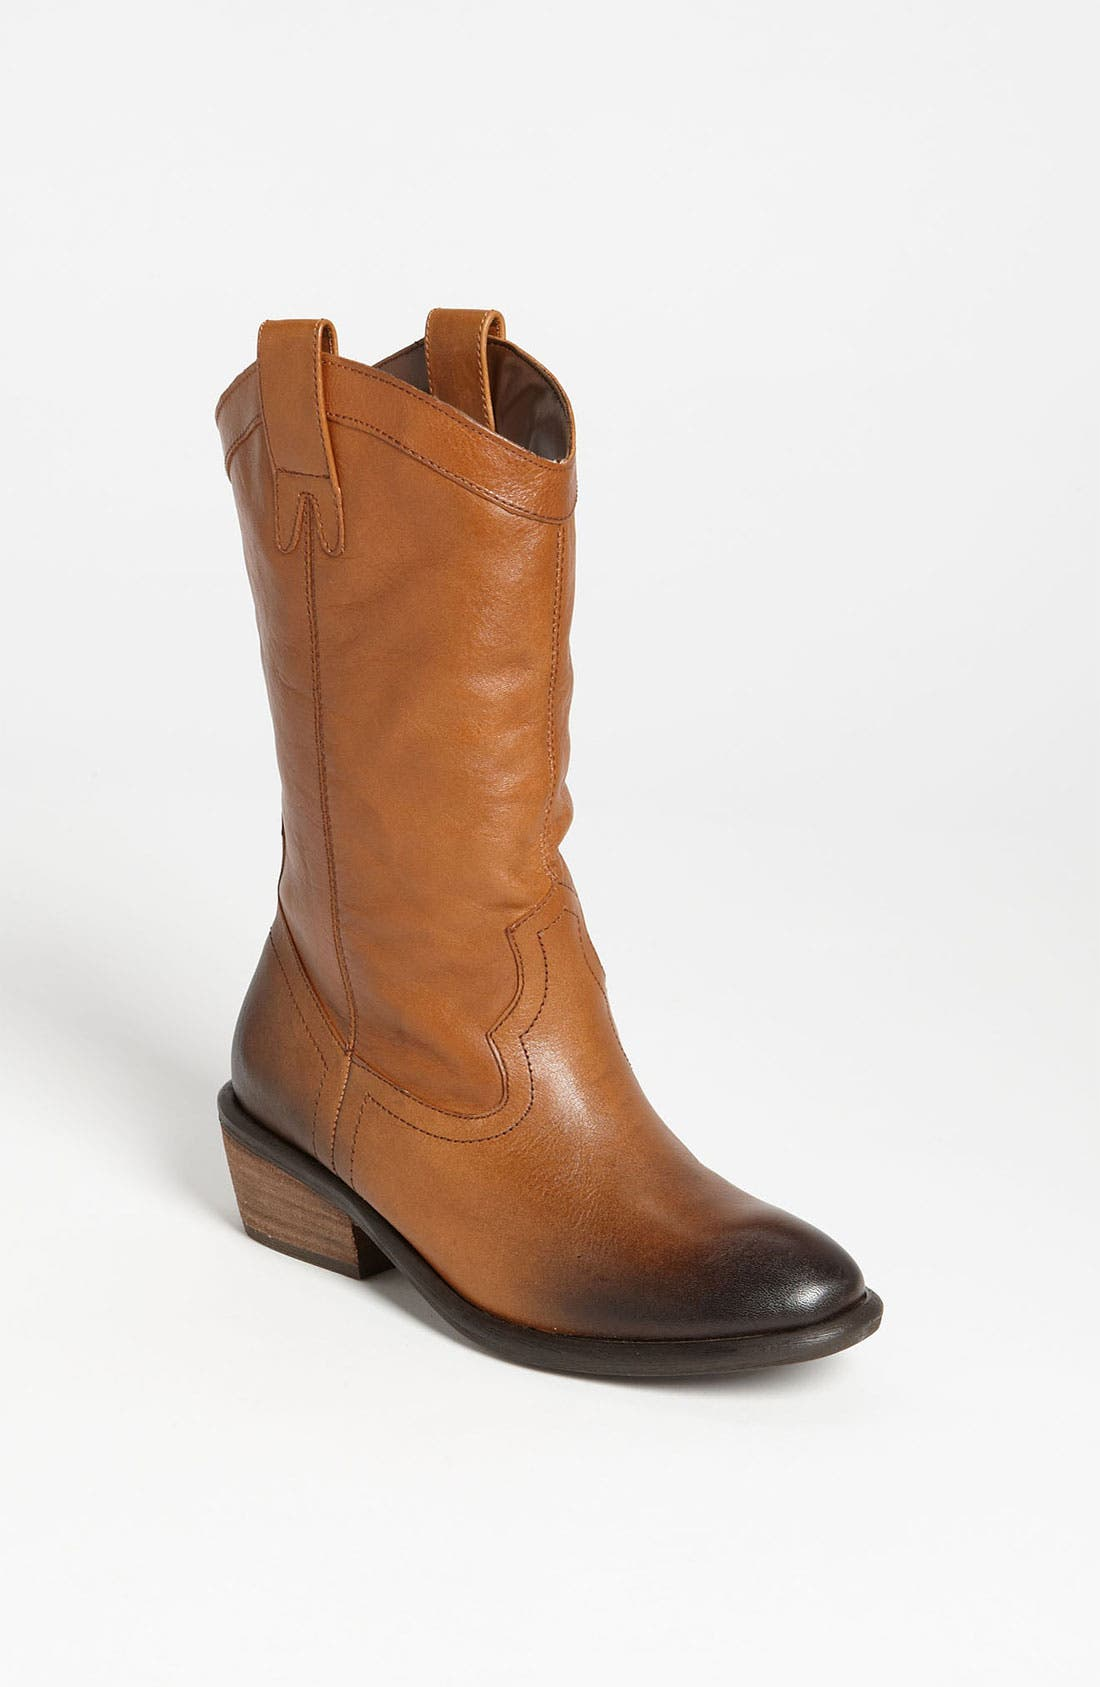 Alternate Image 1 Selected - Jessica Simpson 'Rosanna' Boot